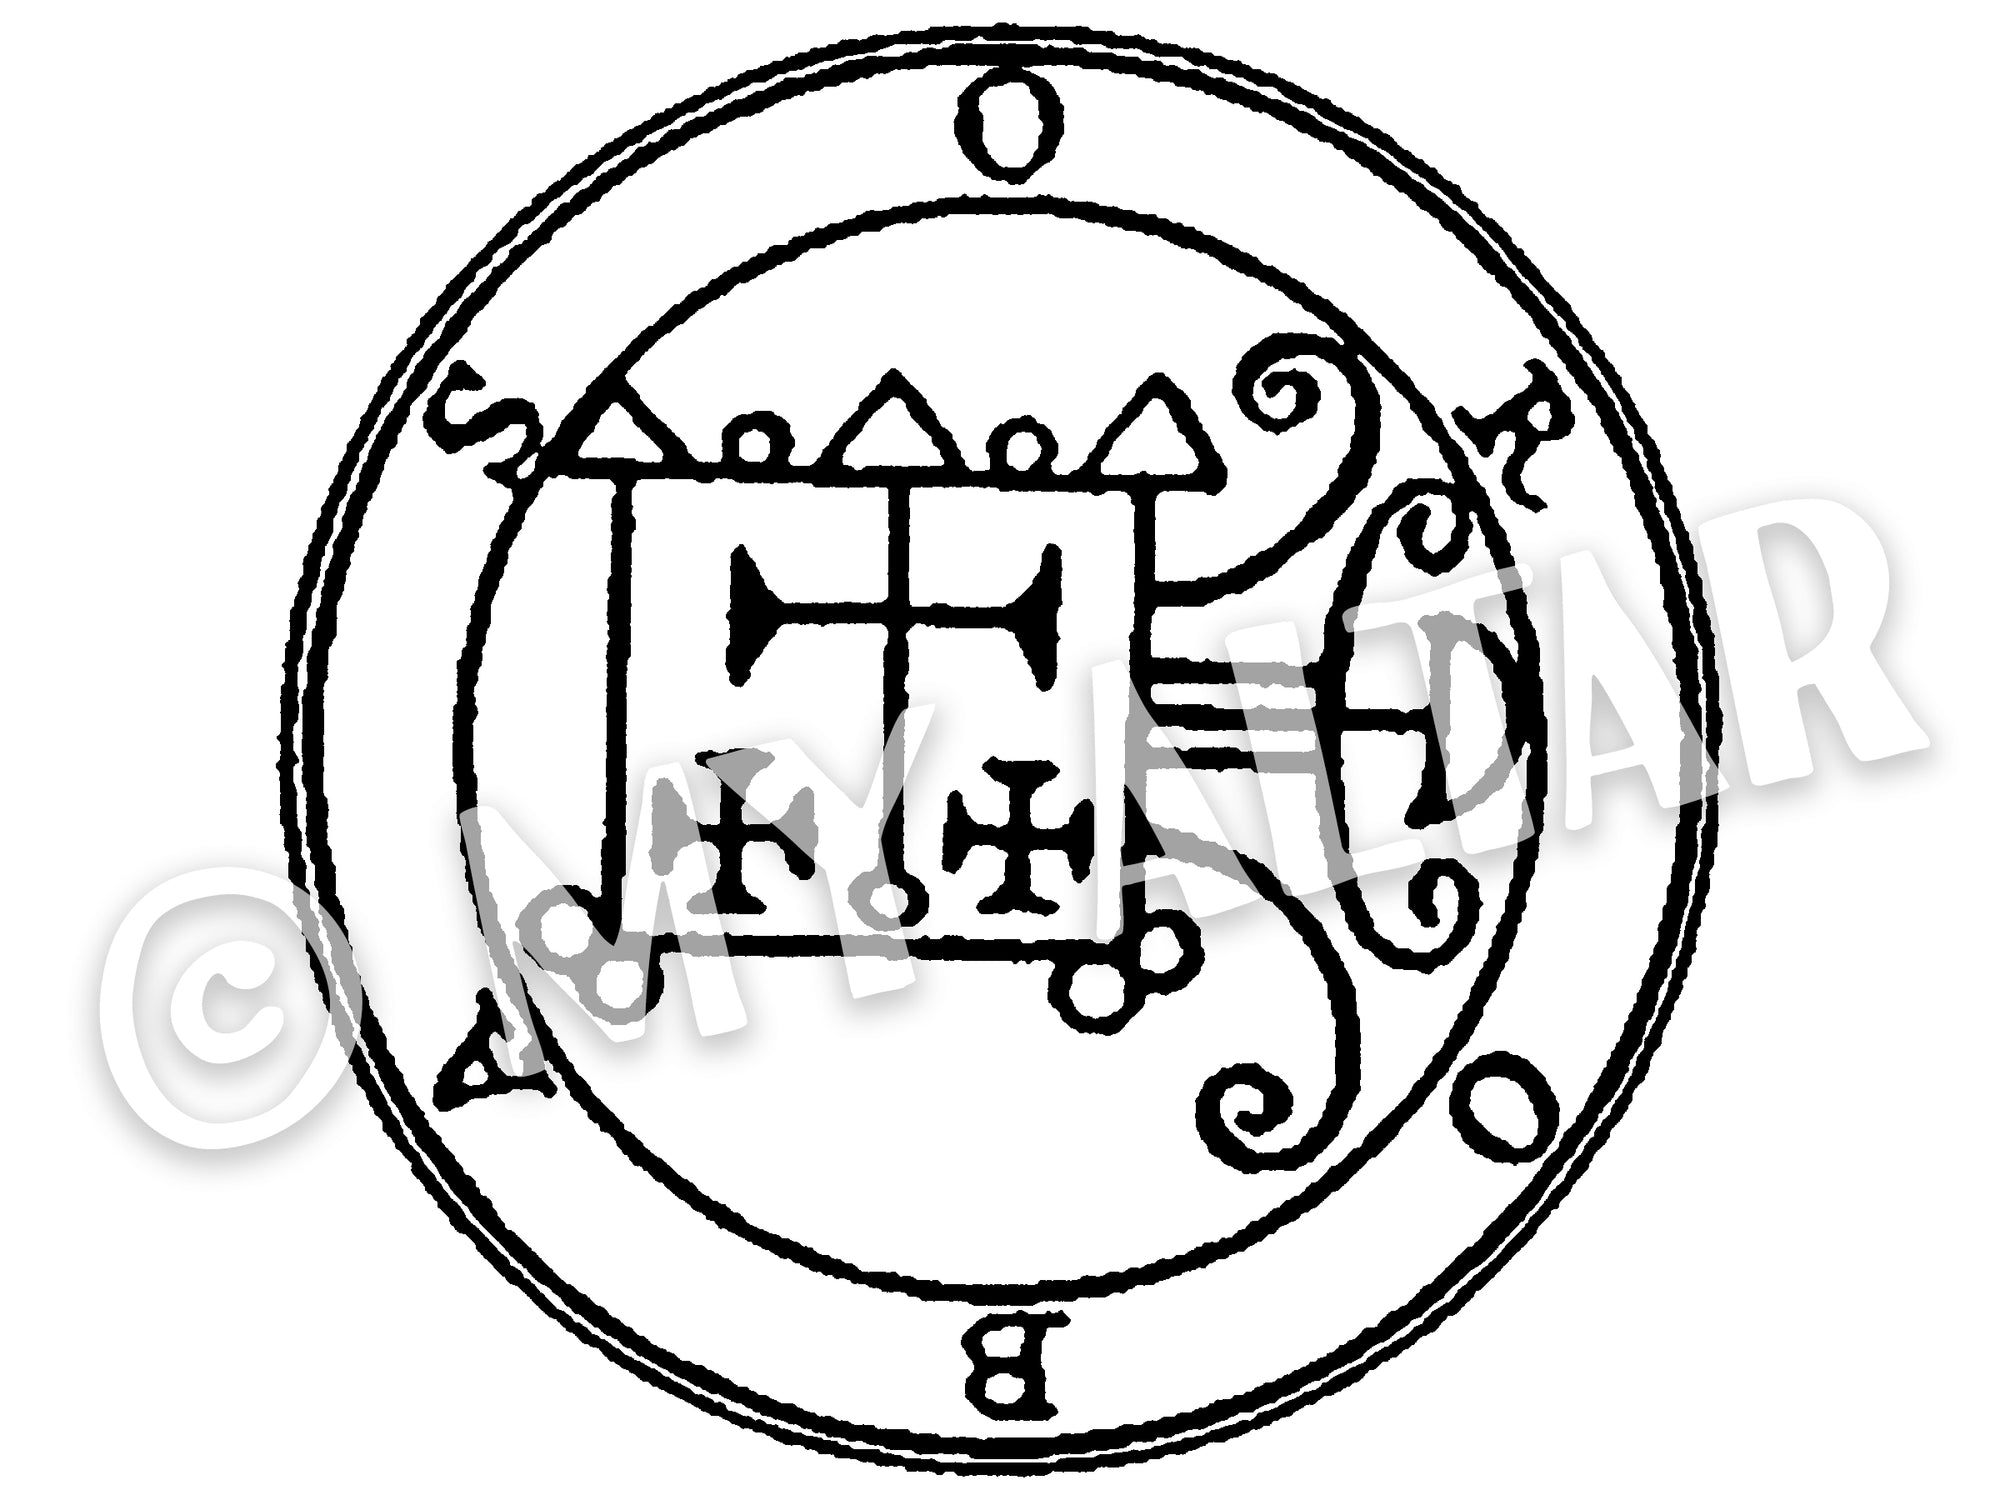 "Set of 2 Large 5"" Orobas 55th Lesser Seal Goetia Solomon Invocation Sigil Waterproof Temporary Tattoos"